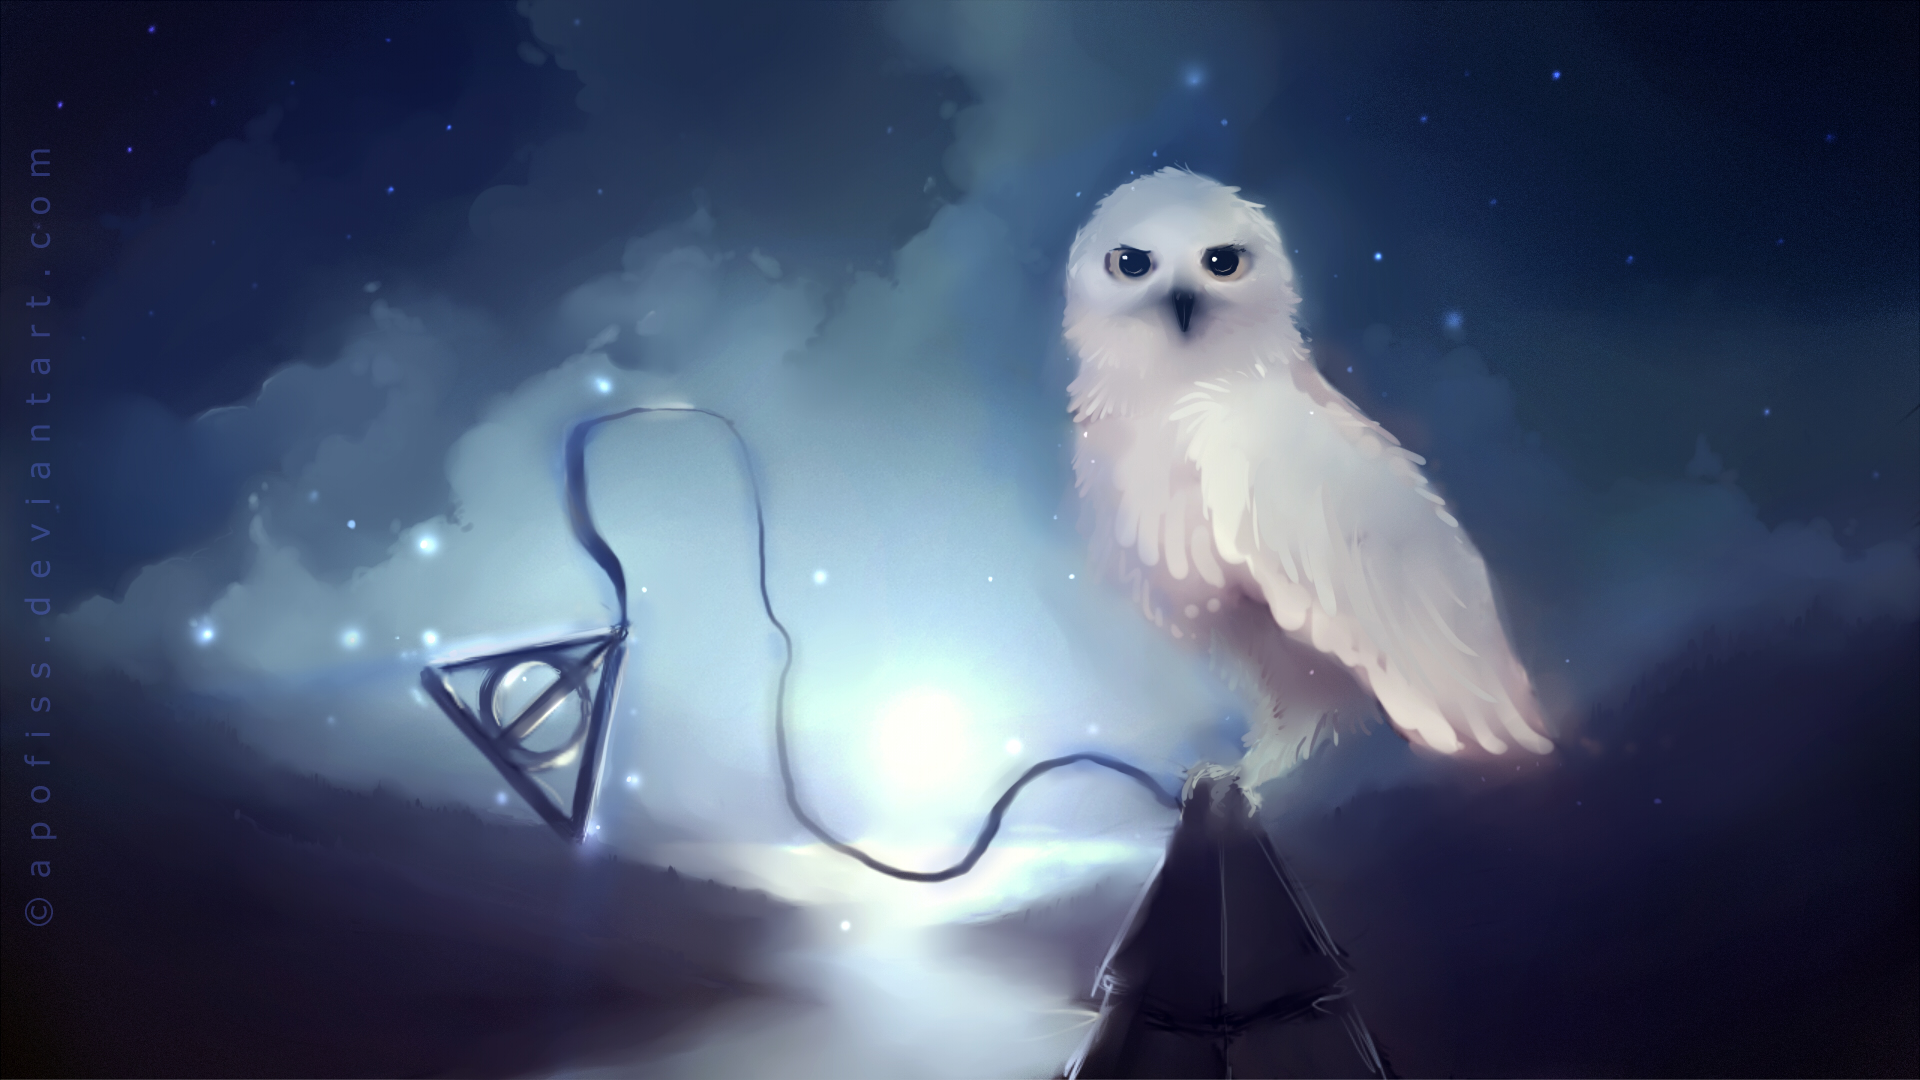 Great Wallpaper Harry Potter Sign - Hedwig  You Should Have_705795.jpg